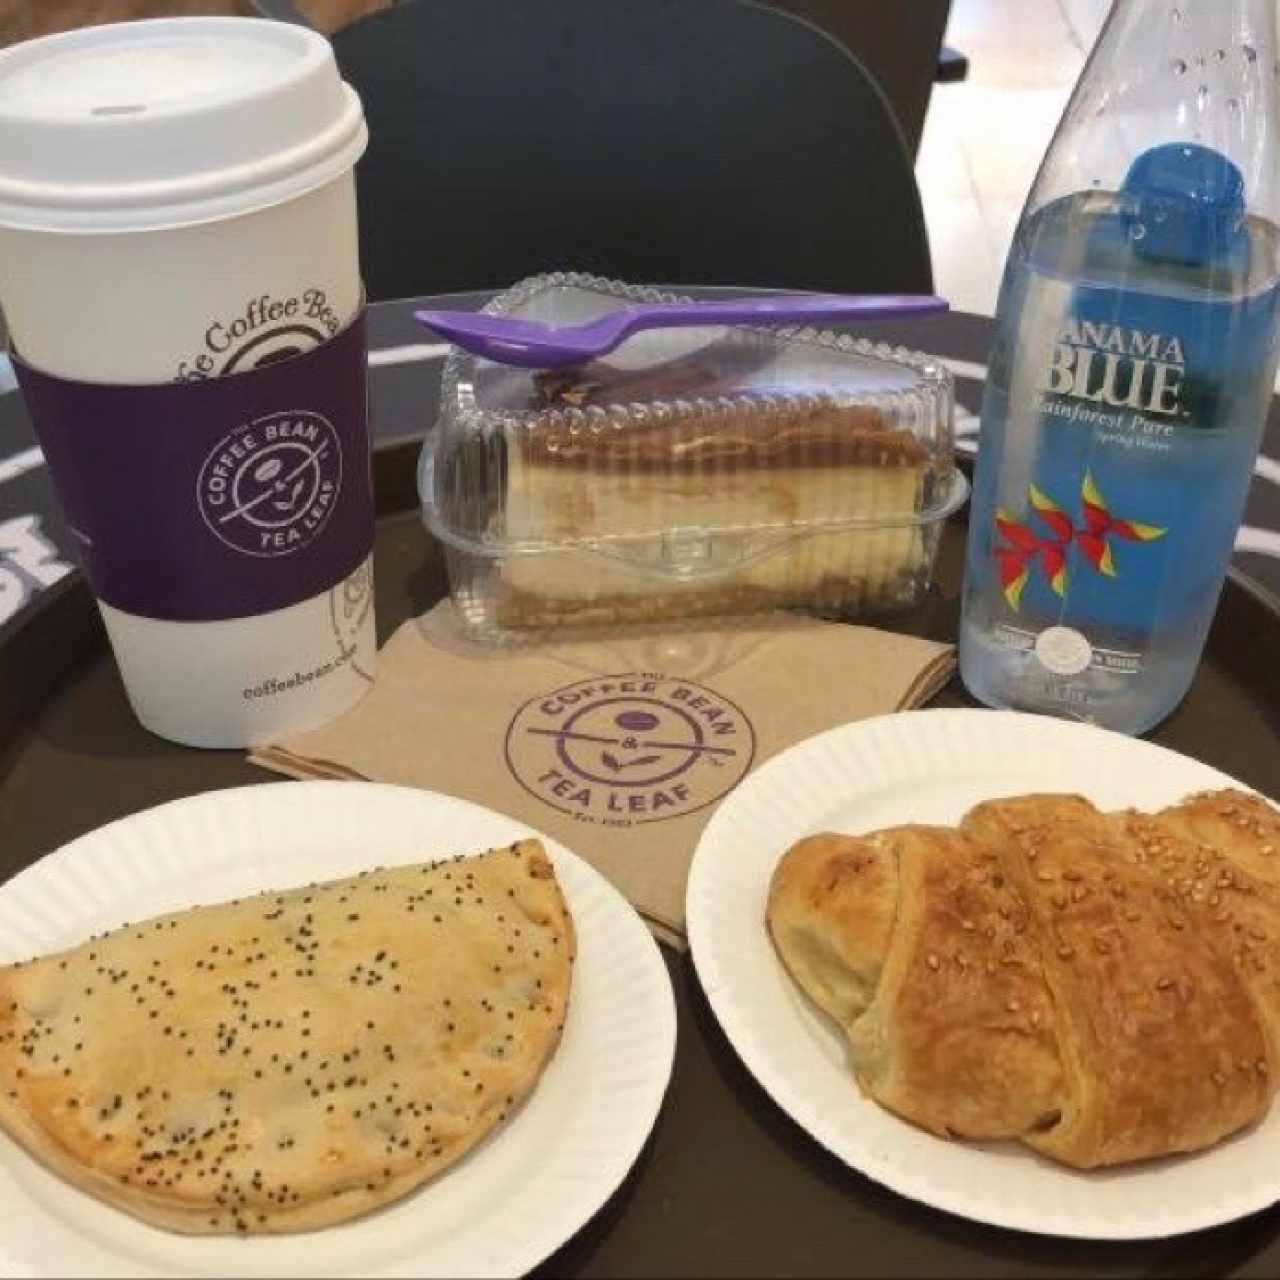 Coffee, Cake, Water, Empanadas and Croissant!